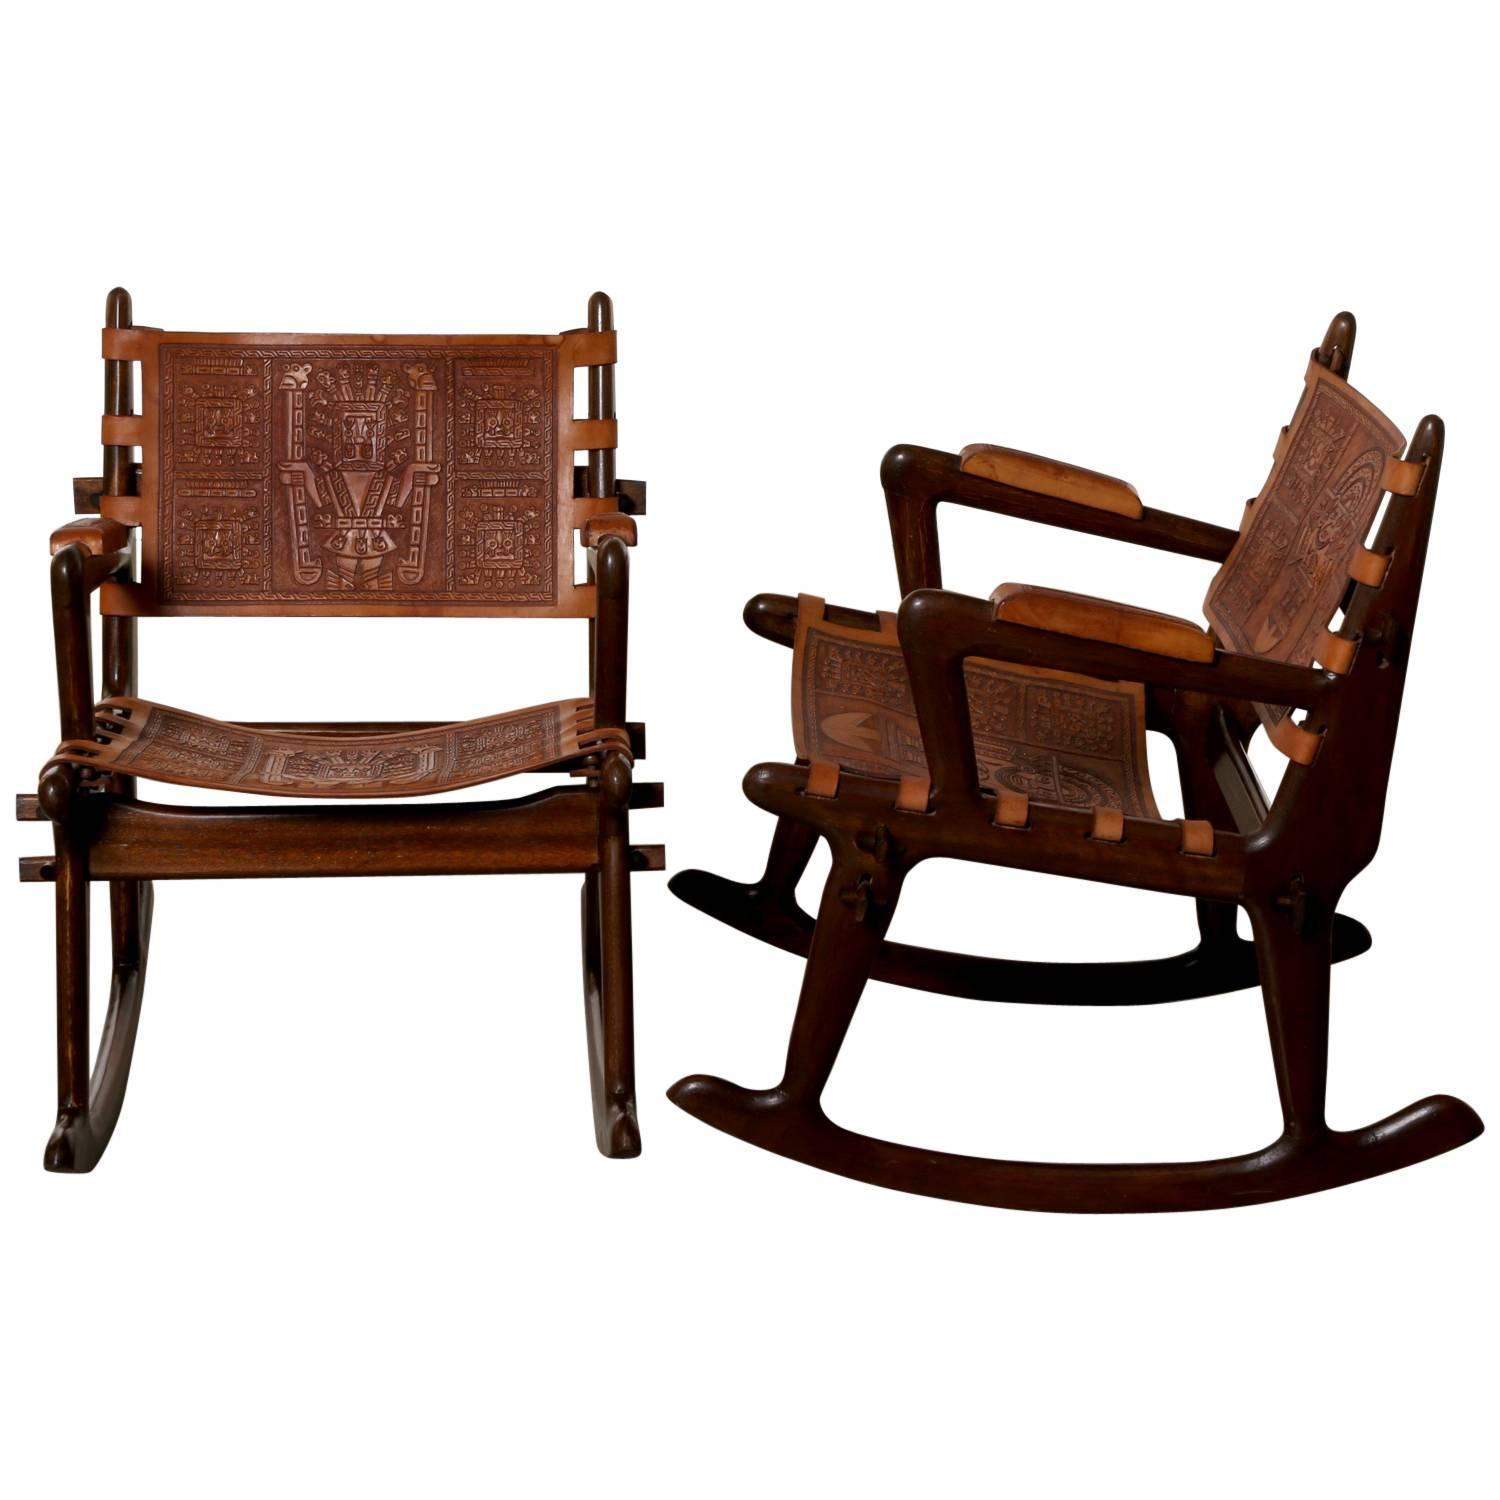 rocking chair leather and wood seaside deck chairs south american tooled